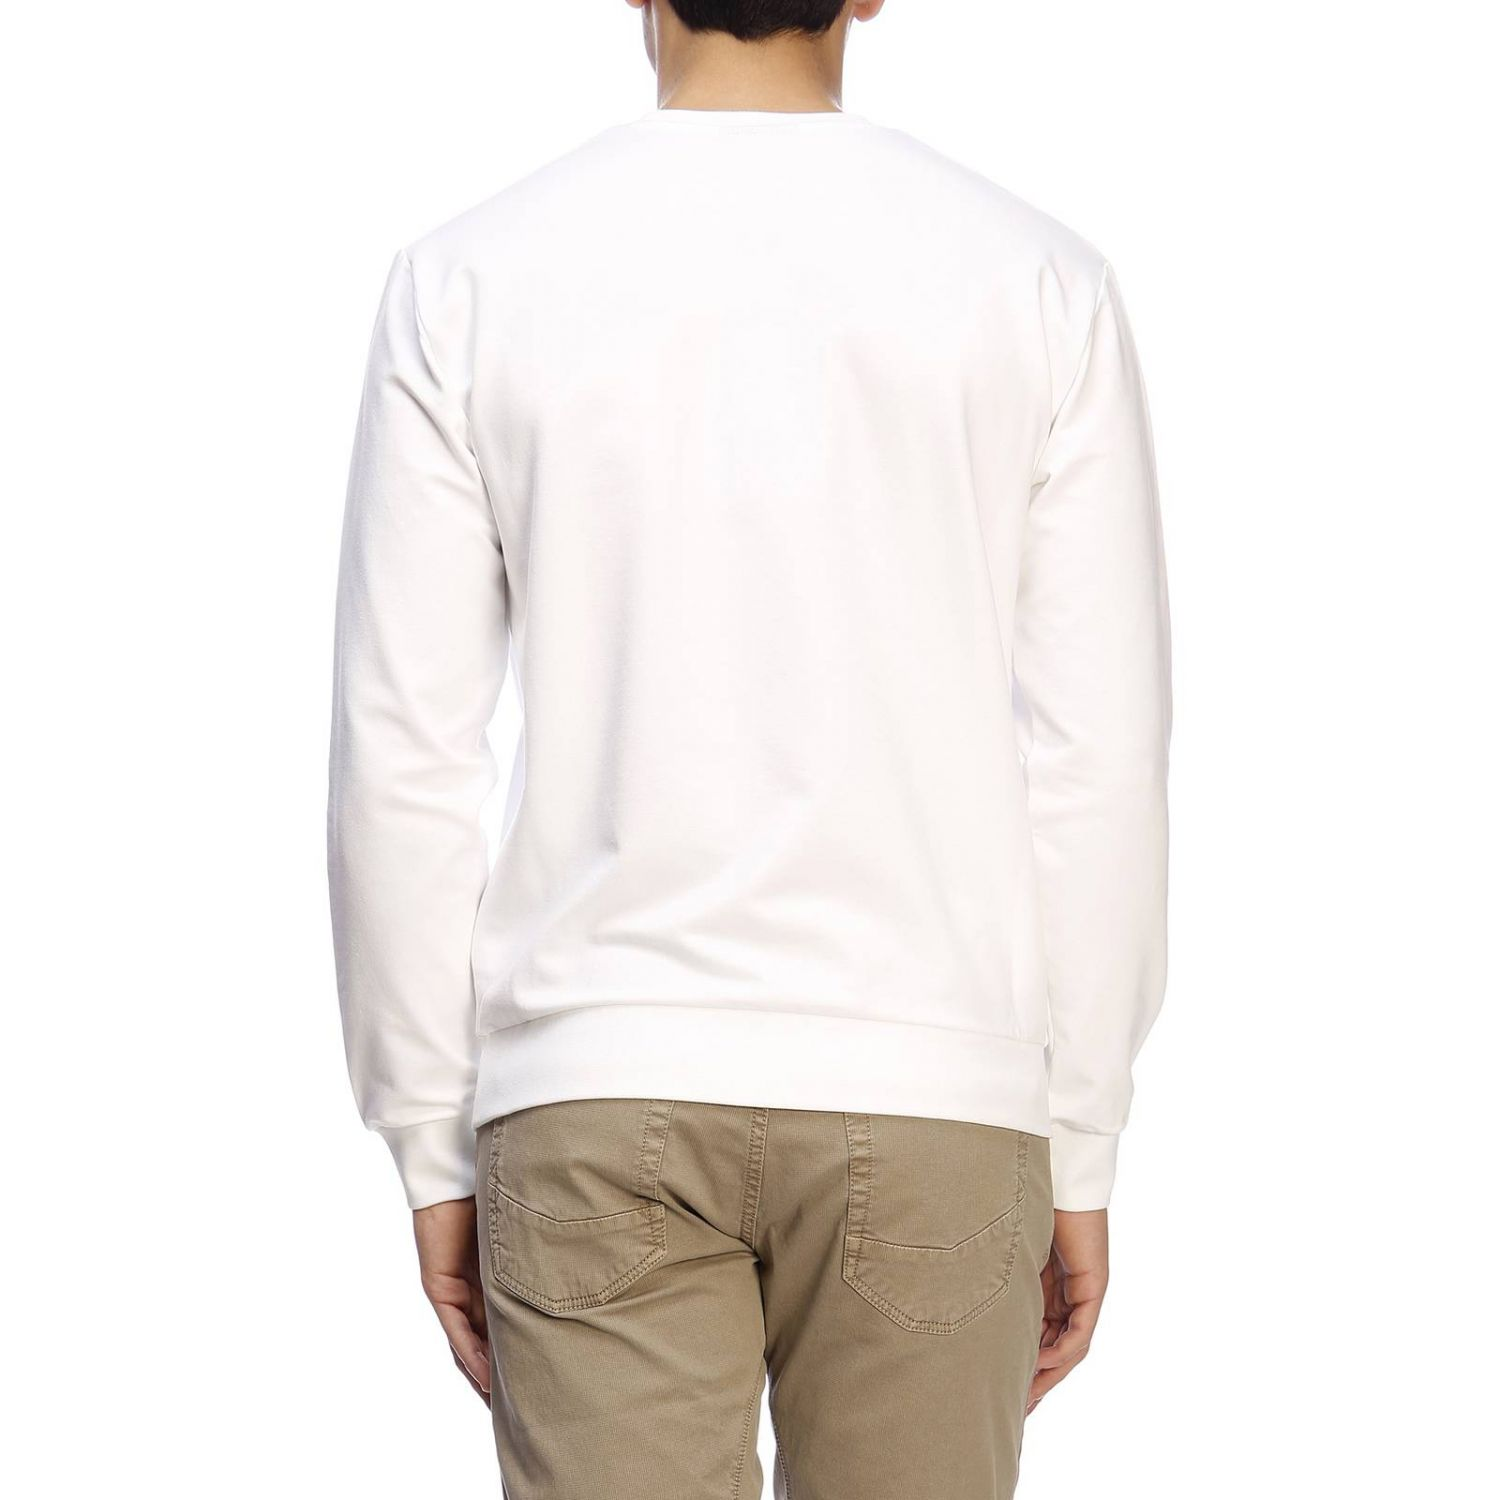 Sweater men Emporio Armani white 3